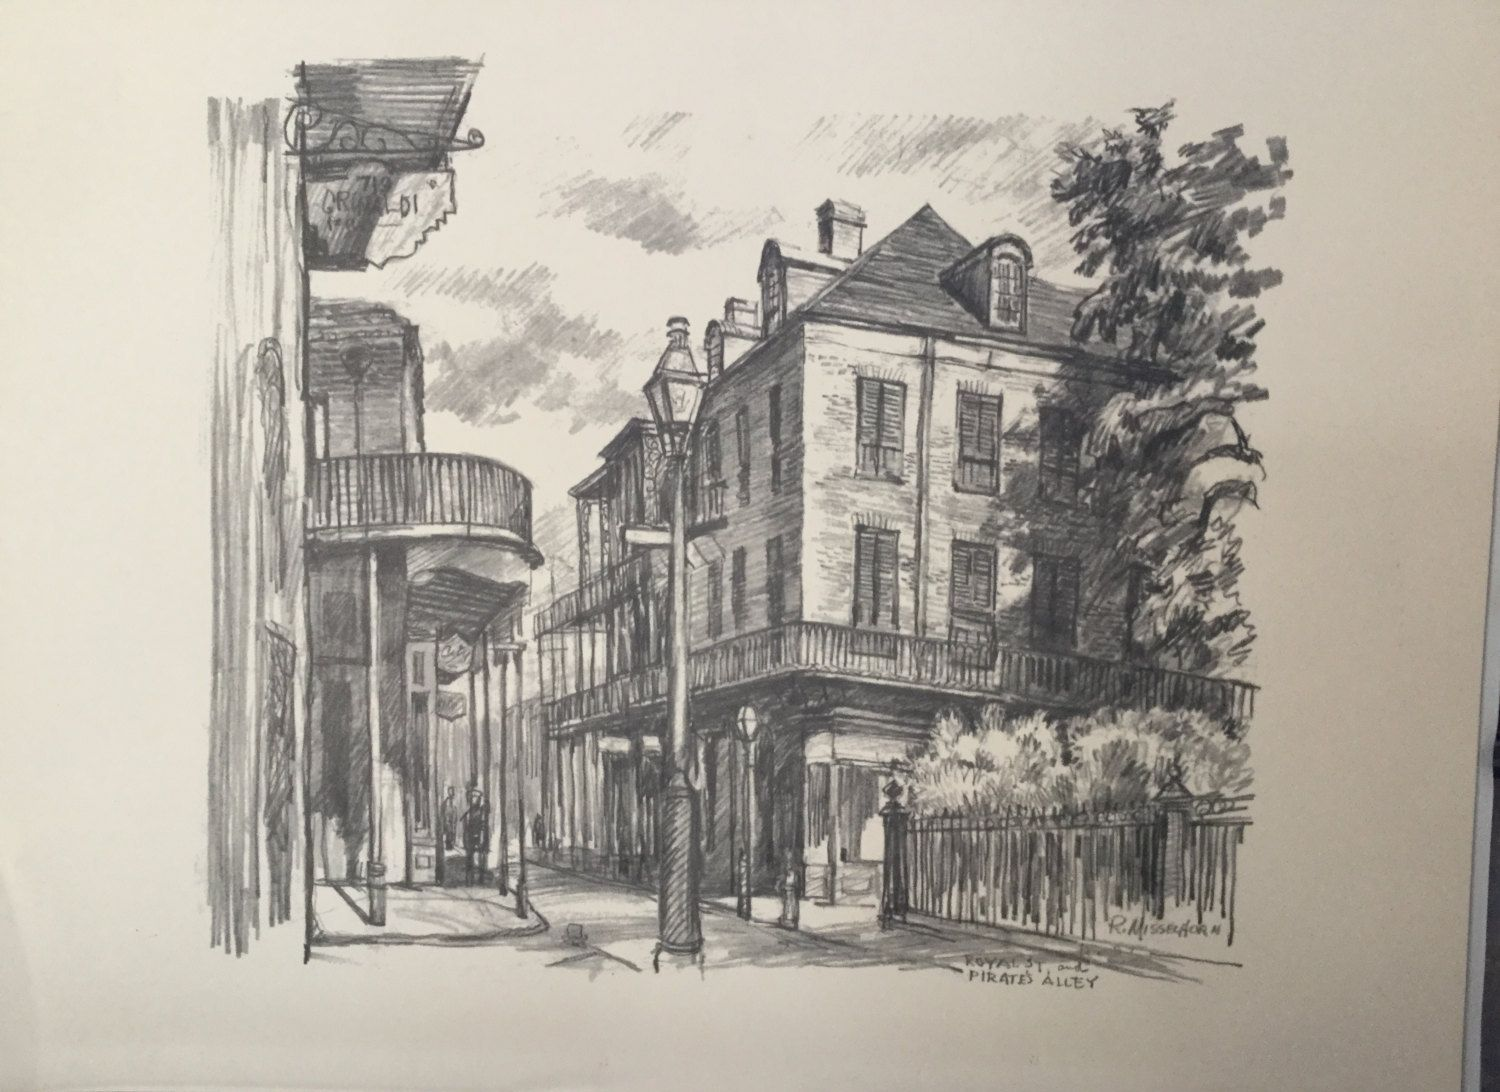 Vintage roscoe misselhorn pencil sketch new orleans pencil sketch new orleans pirates alley sketch art pencil sketch artwork by pattispickins on etsy